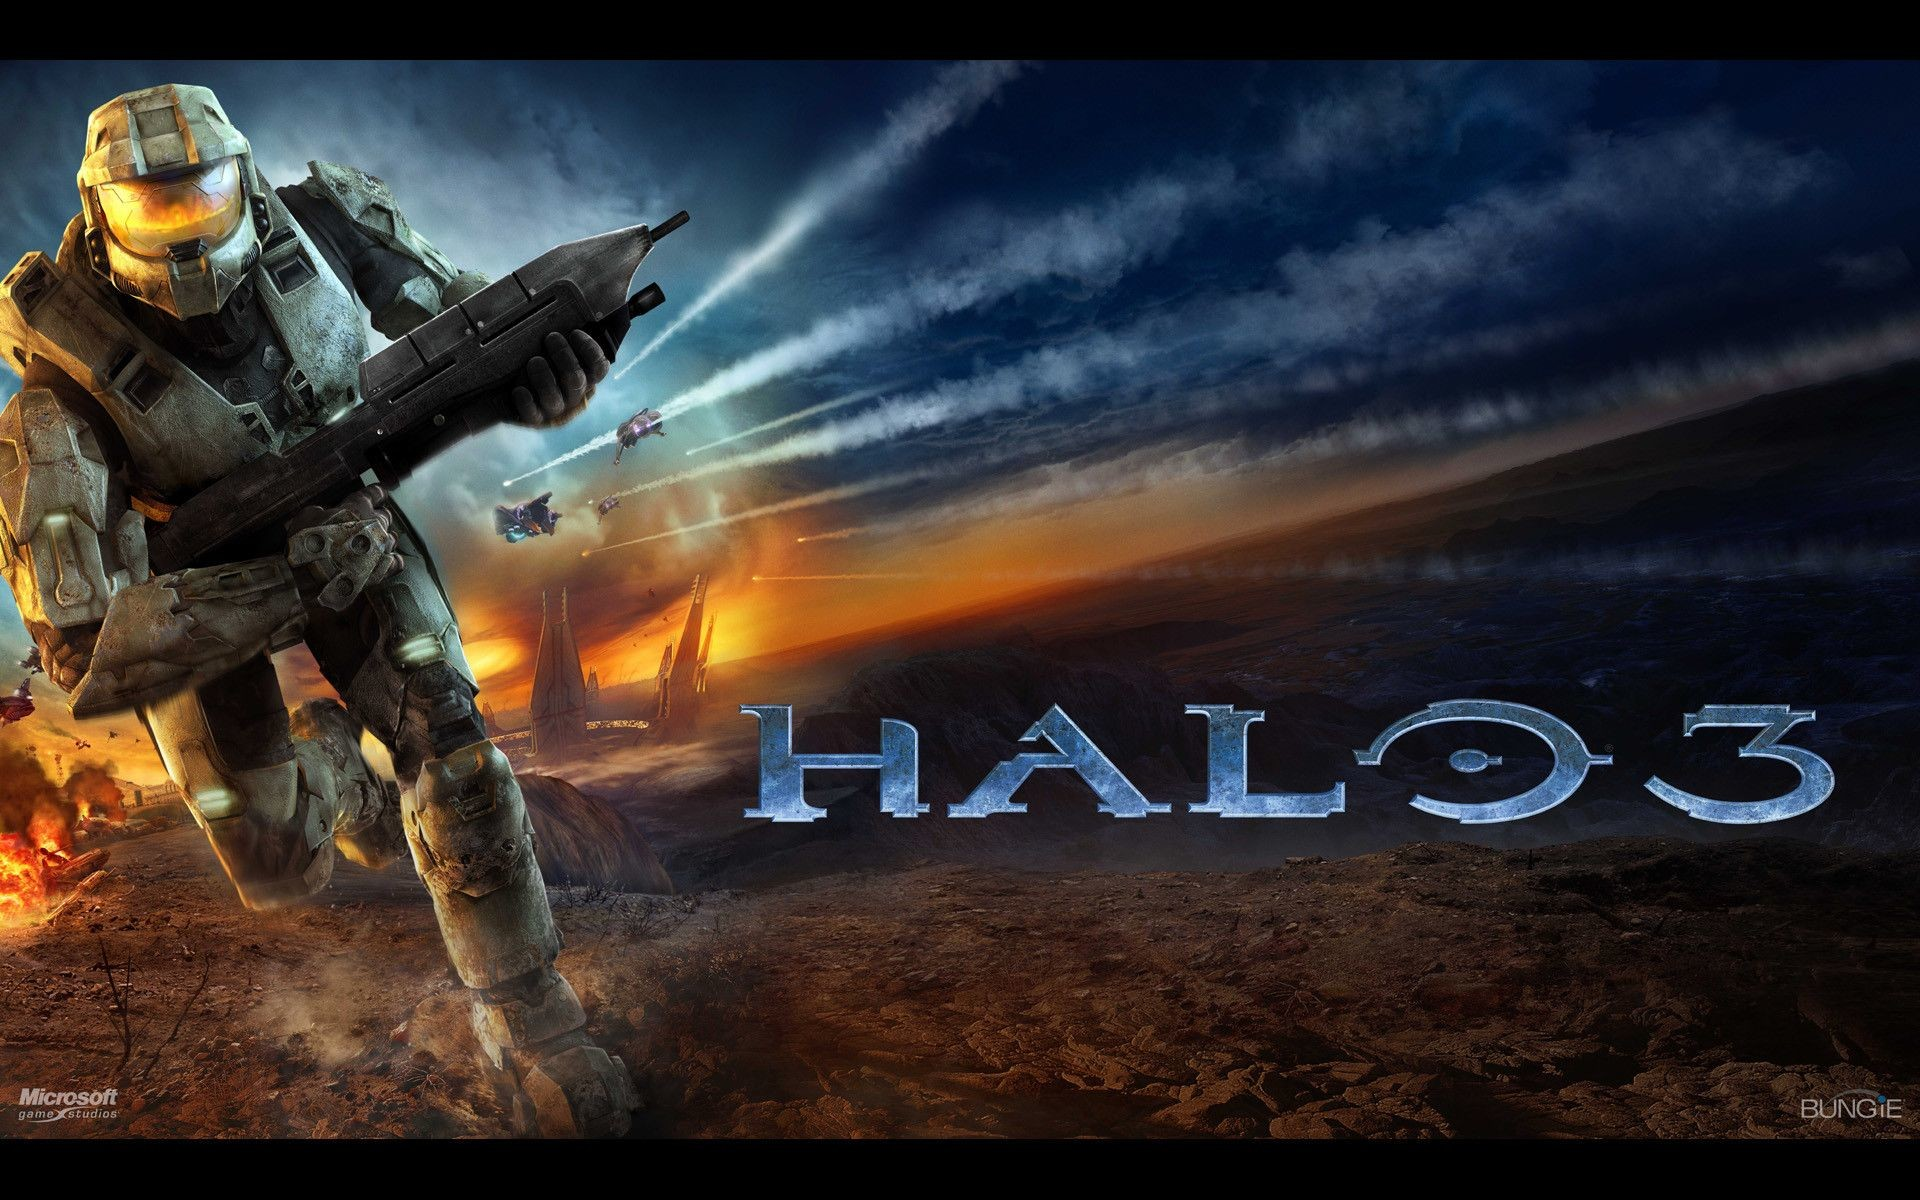 1920x1200 Halo 3 Backgrounds